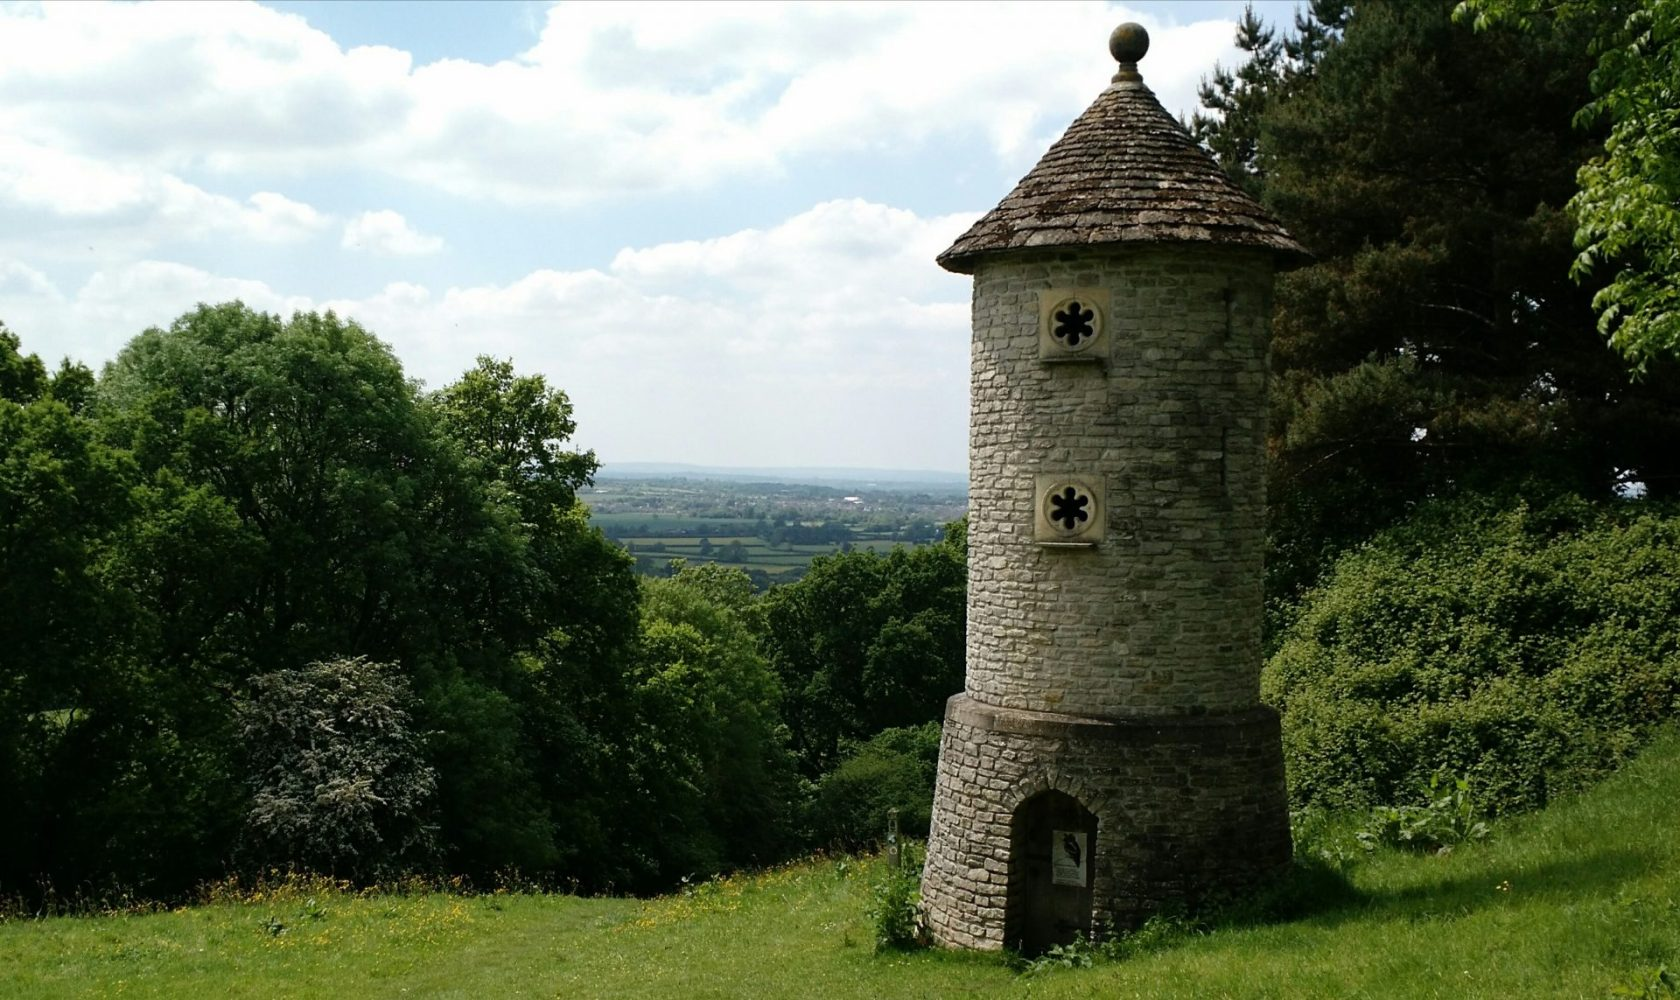 Modern folly built for Swallows and Owls to nest in, Horton hill fort, Cotswolds